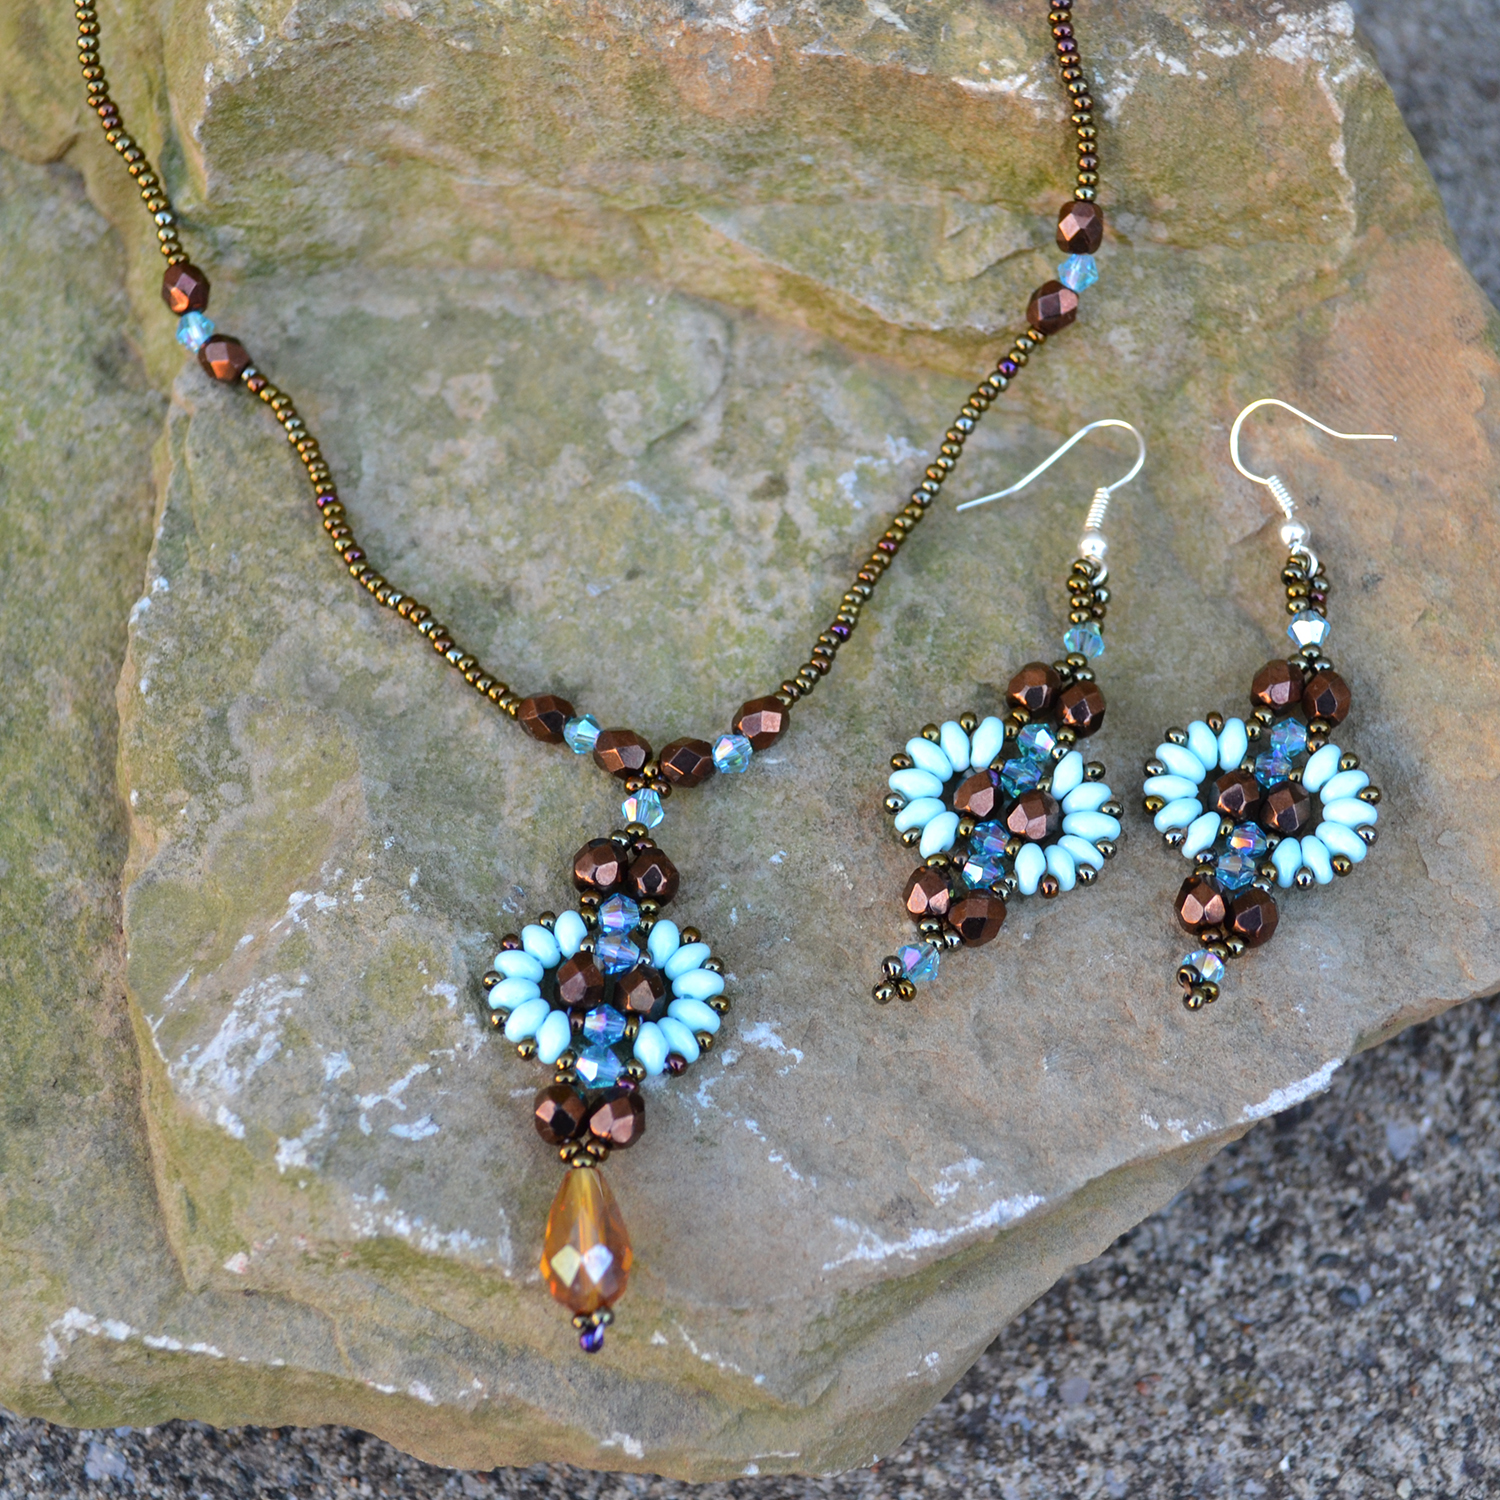 Quetzal Necklace with Quetzal Earrings in turquoise brown